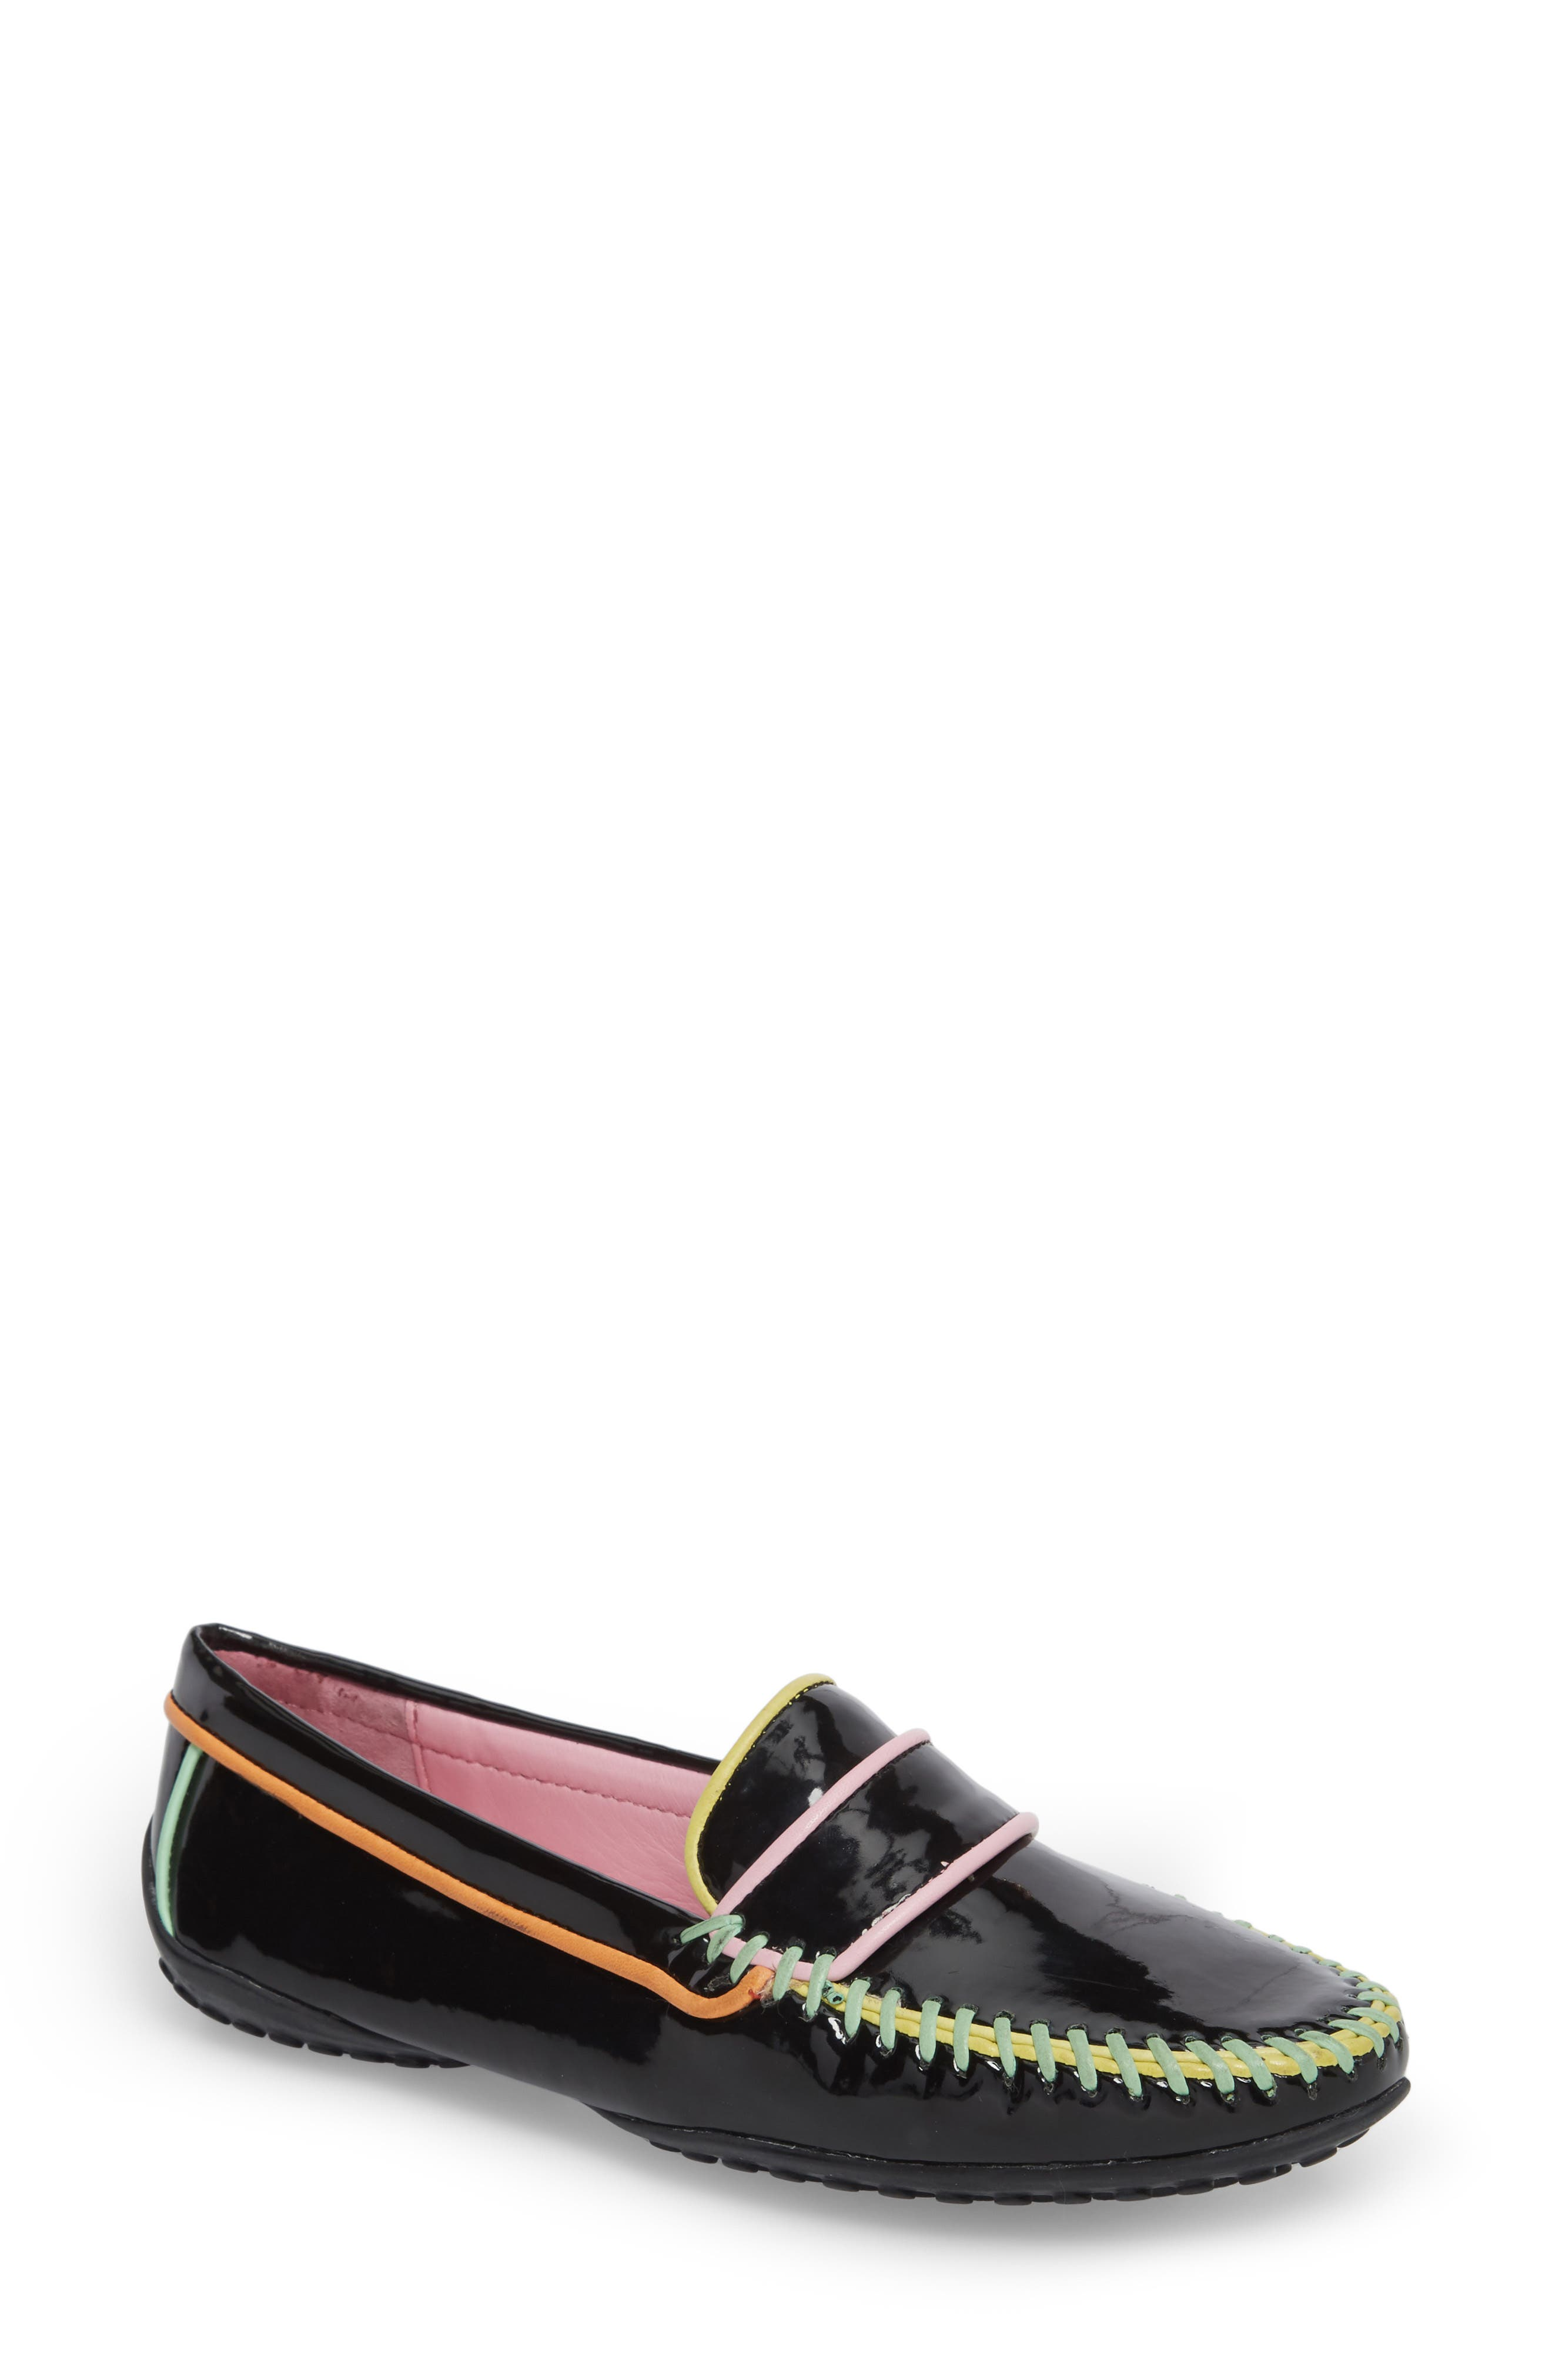 Moccasin Loafer,                             Main thumbnail 1, color,                             003